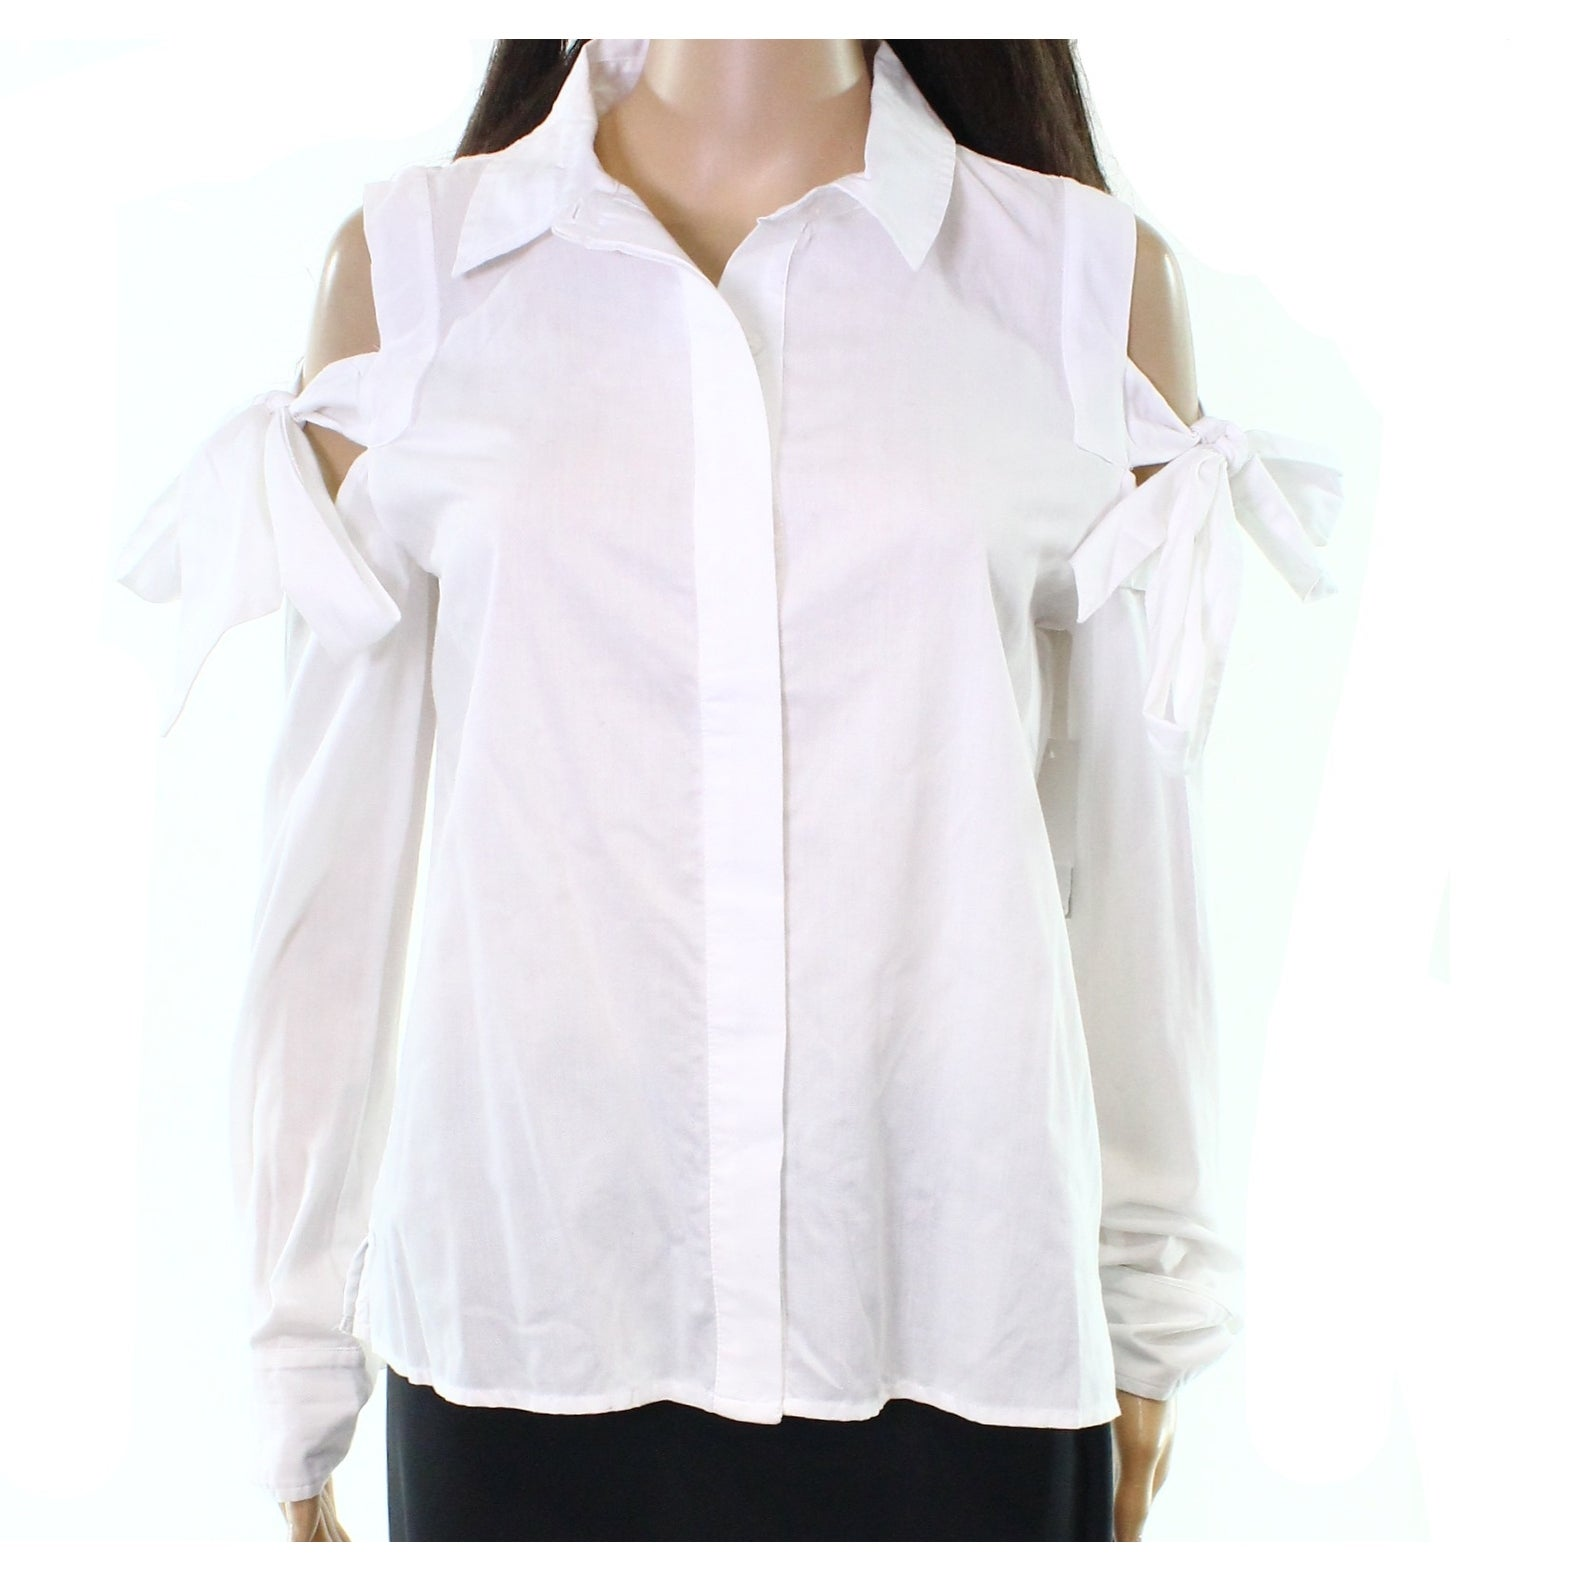 ee83e4bb759 White Womens Size Small S Tie Cold Shoulder Button Down Top - On Sale -  Free Shipping On Orders Over $45 - Overstock - 22314721